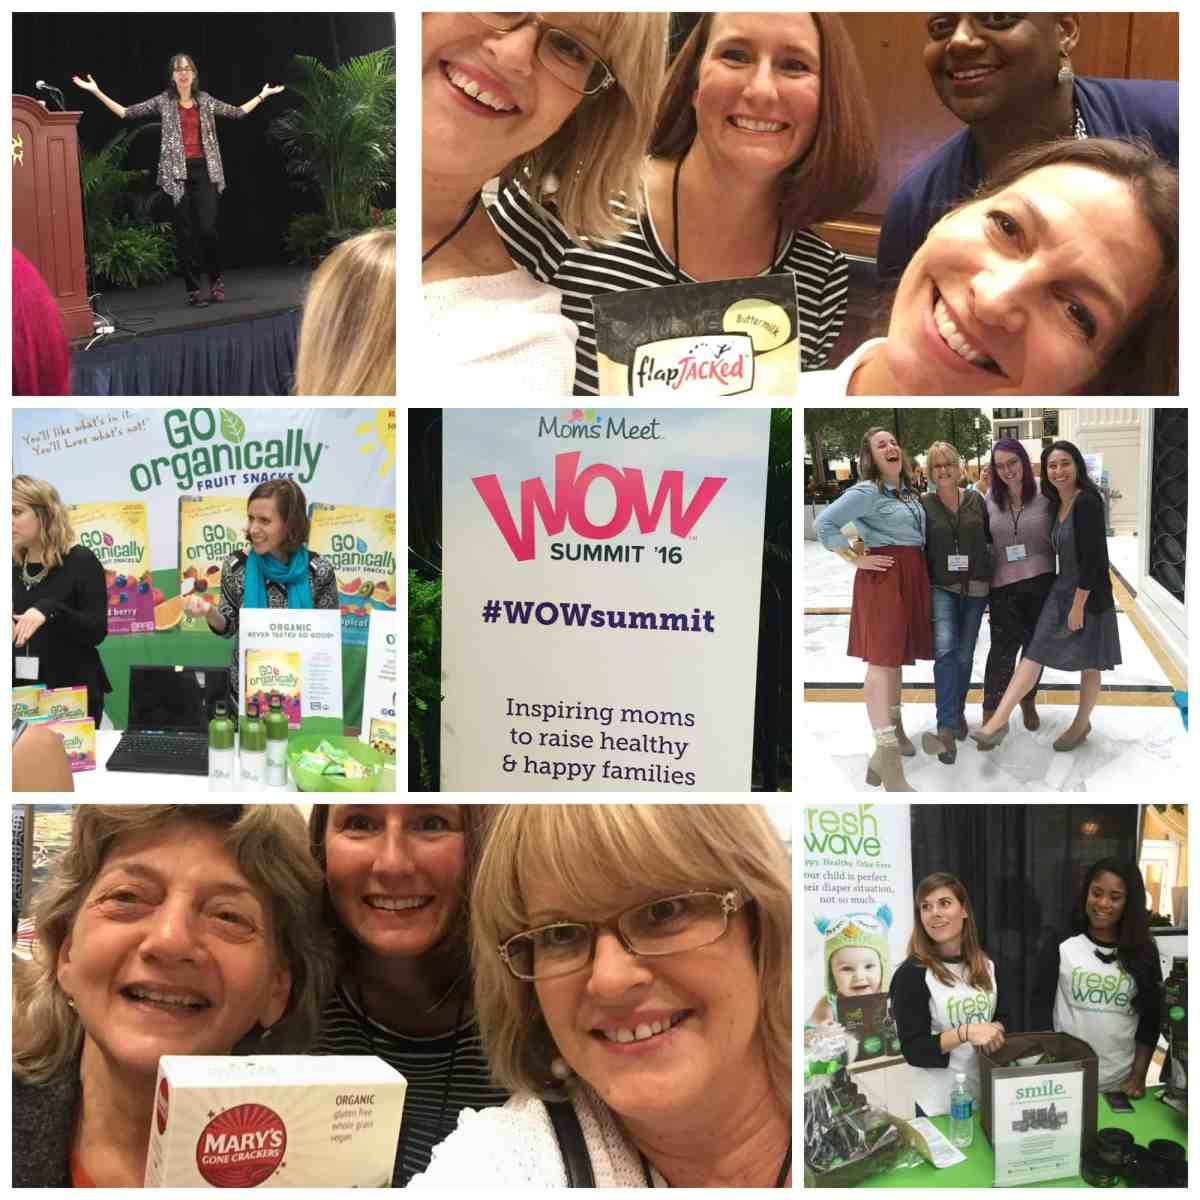 Mom's Meet WOW Summit 2016 Wrap-Up